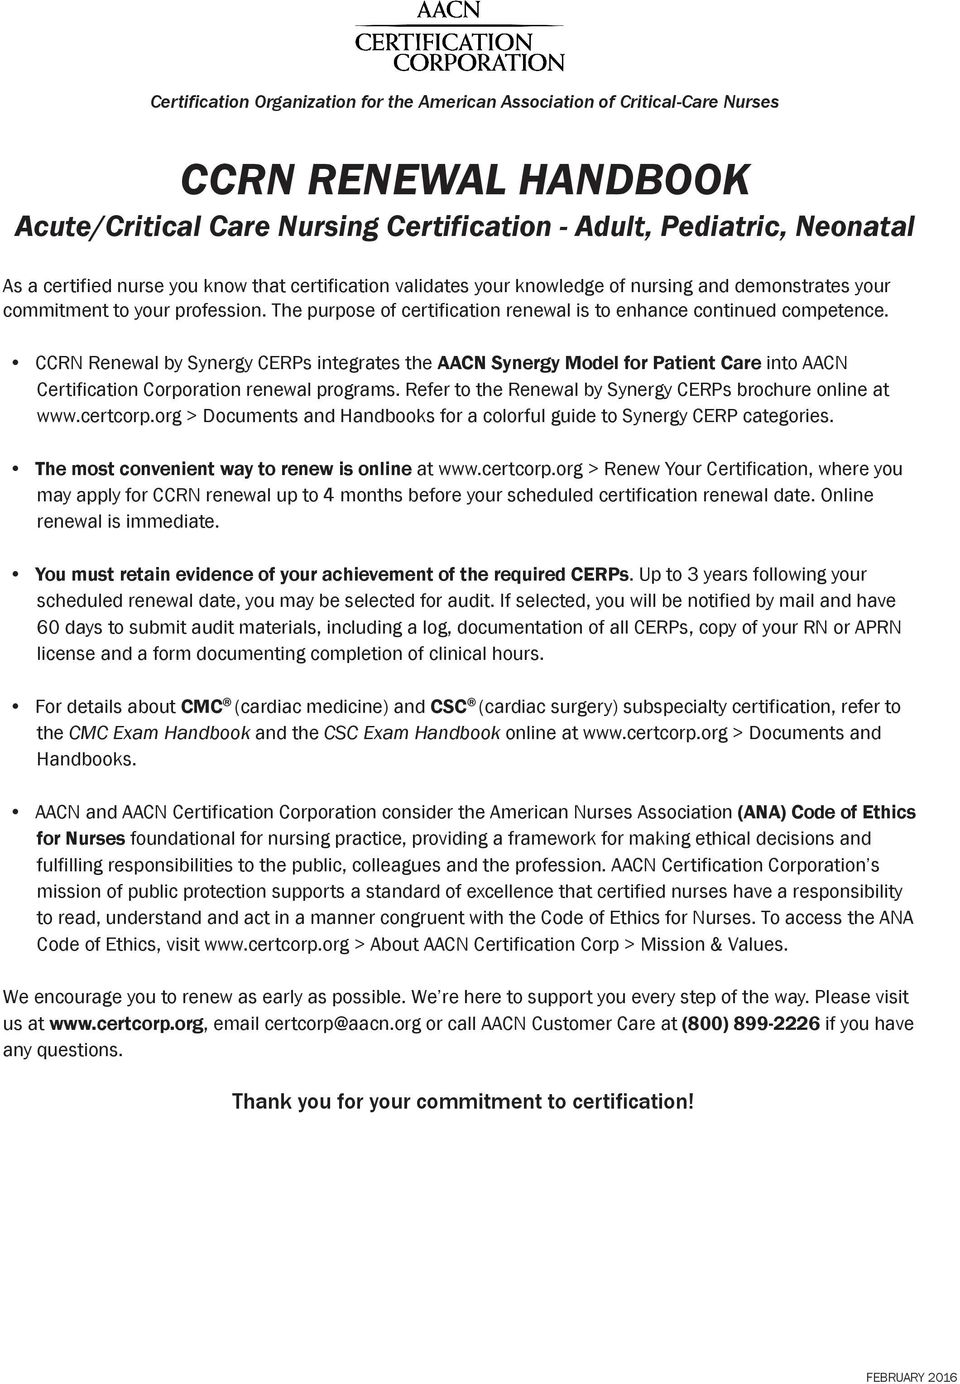 Ccrn Renewal Handbook Adult Pediatric Neonatal Acutecritical Care